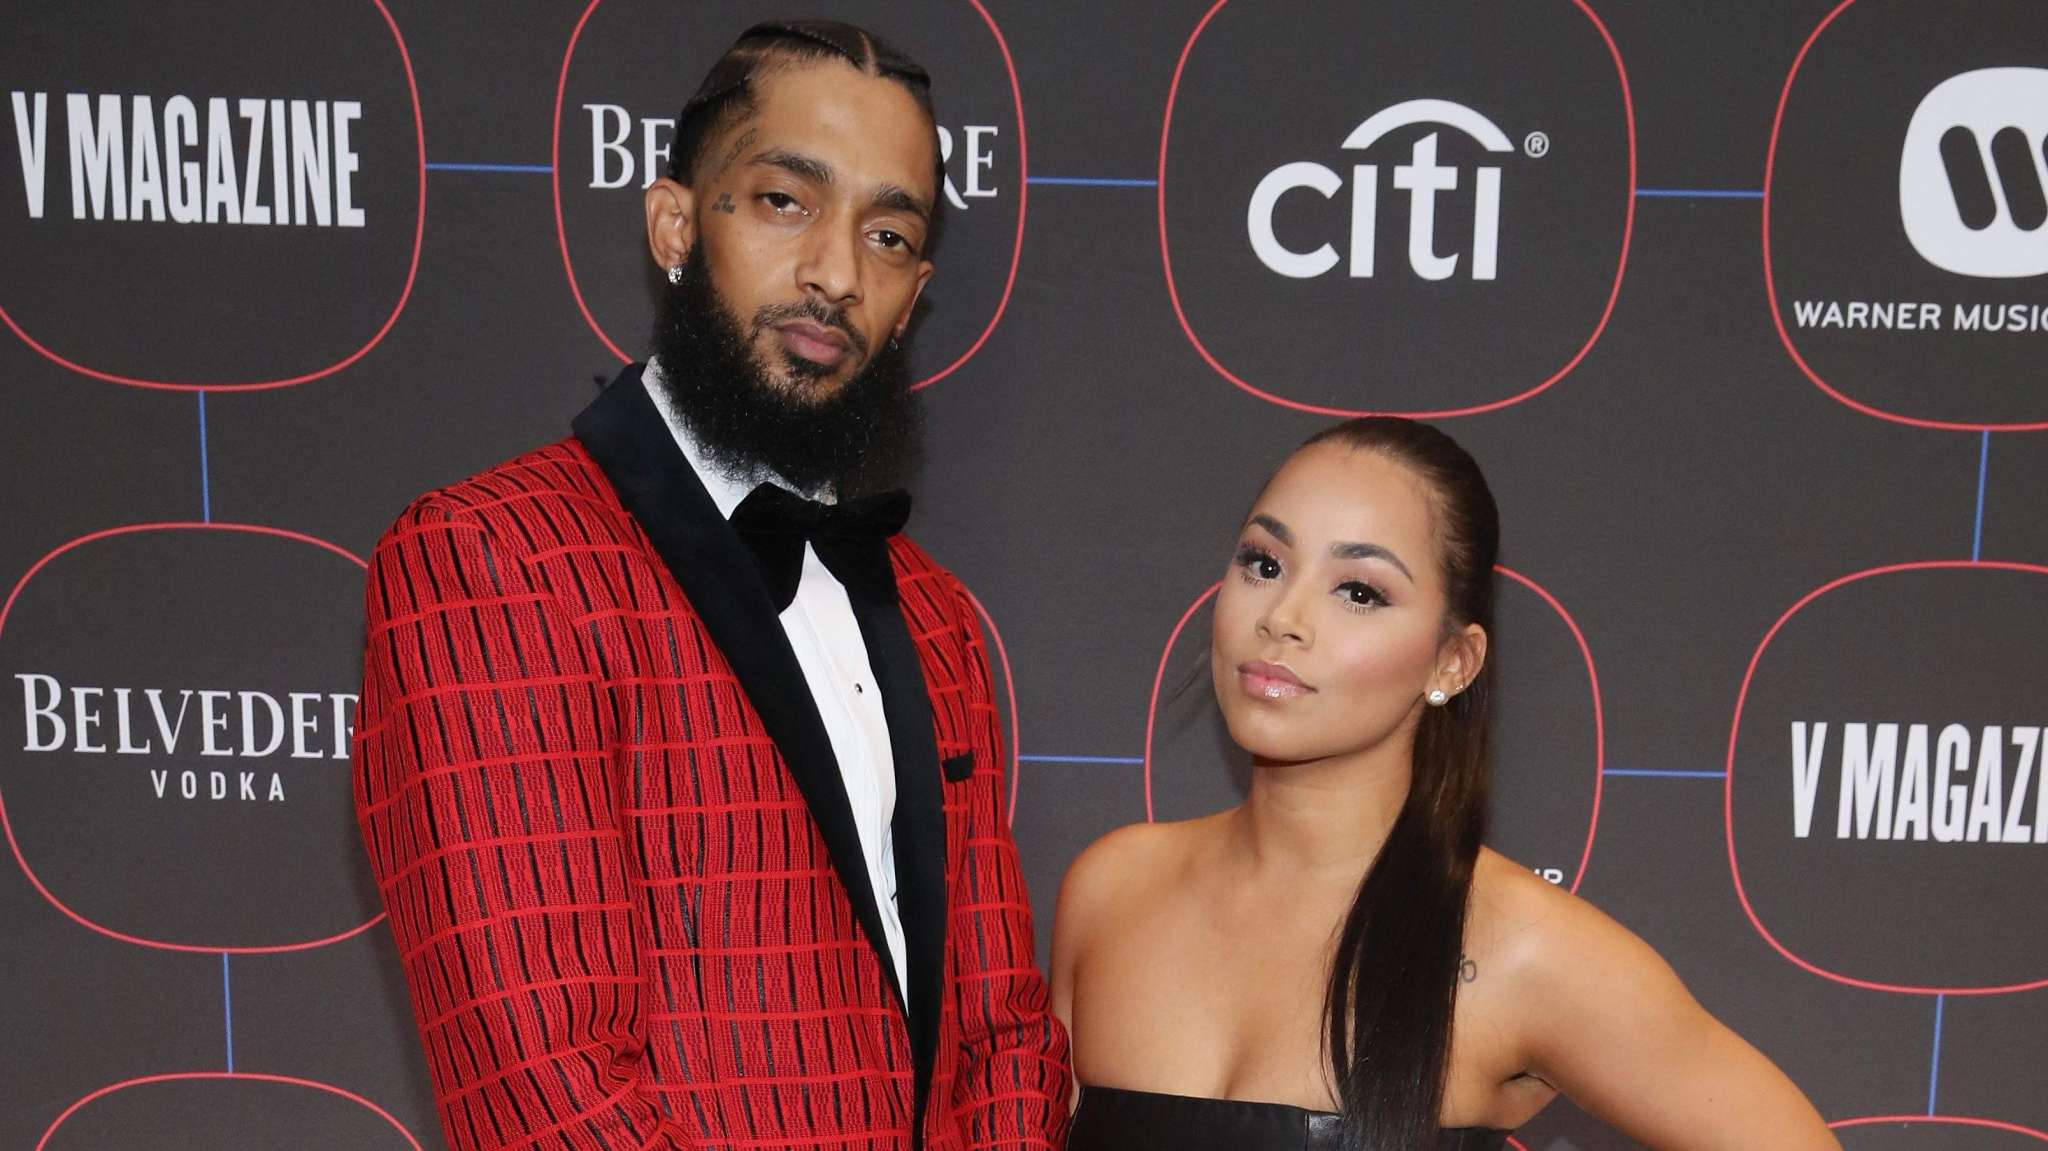 heres-the-last-heartbreaking-video-that-fans-have-of-nipsey-hussle-and-lauren-london-together-people-are-worried-sick-about-her